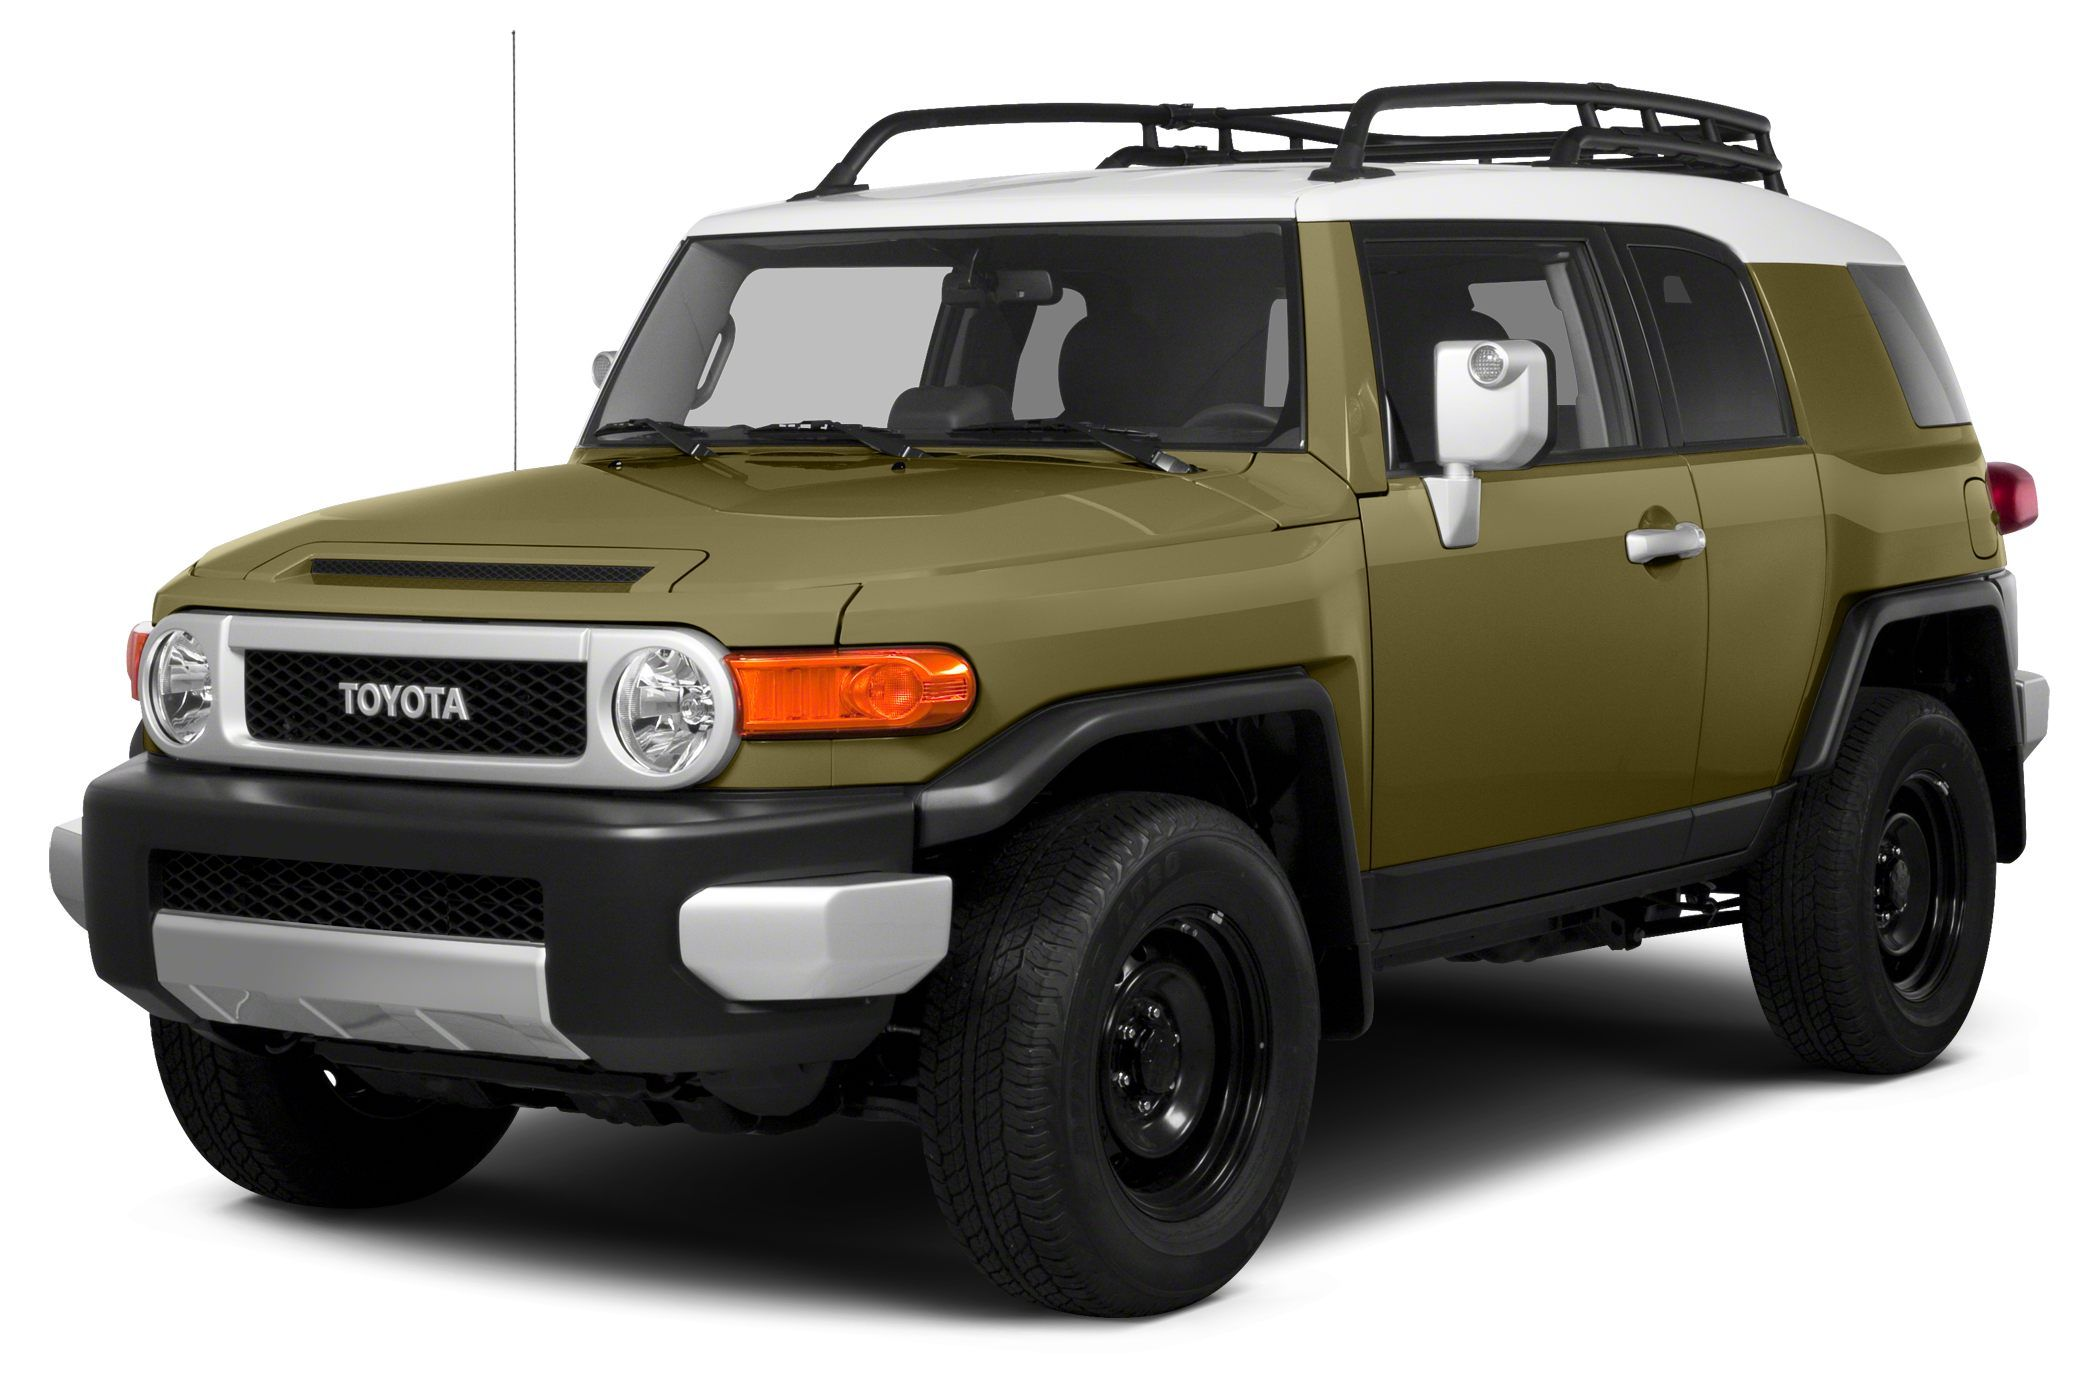 2014 Toyota FJ Cruiser In the top running for long term daily